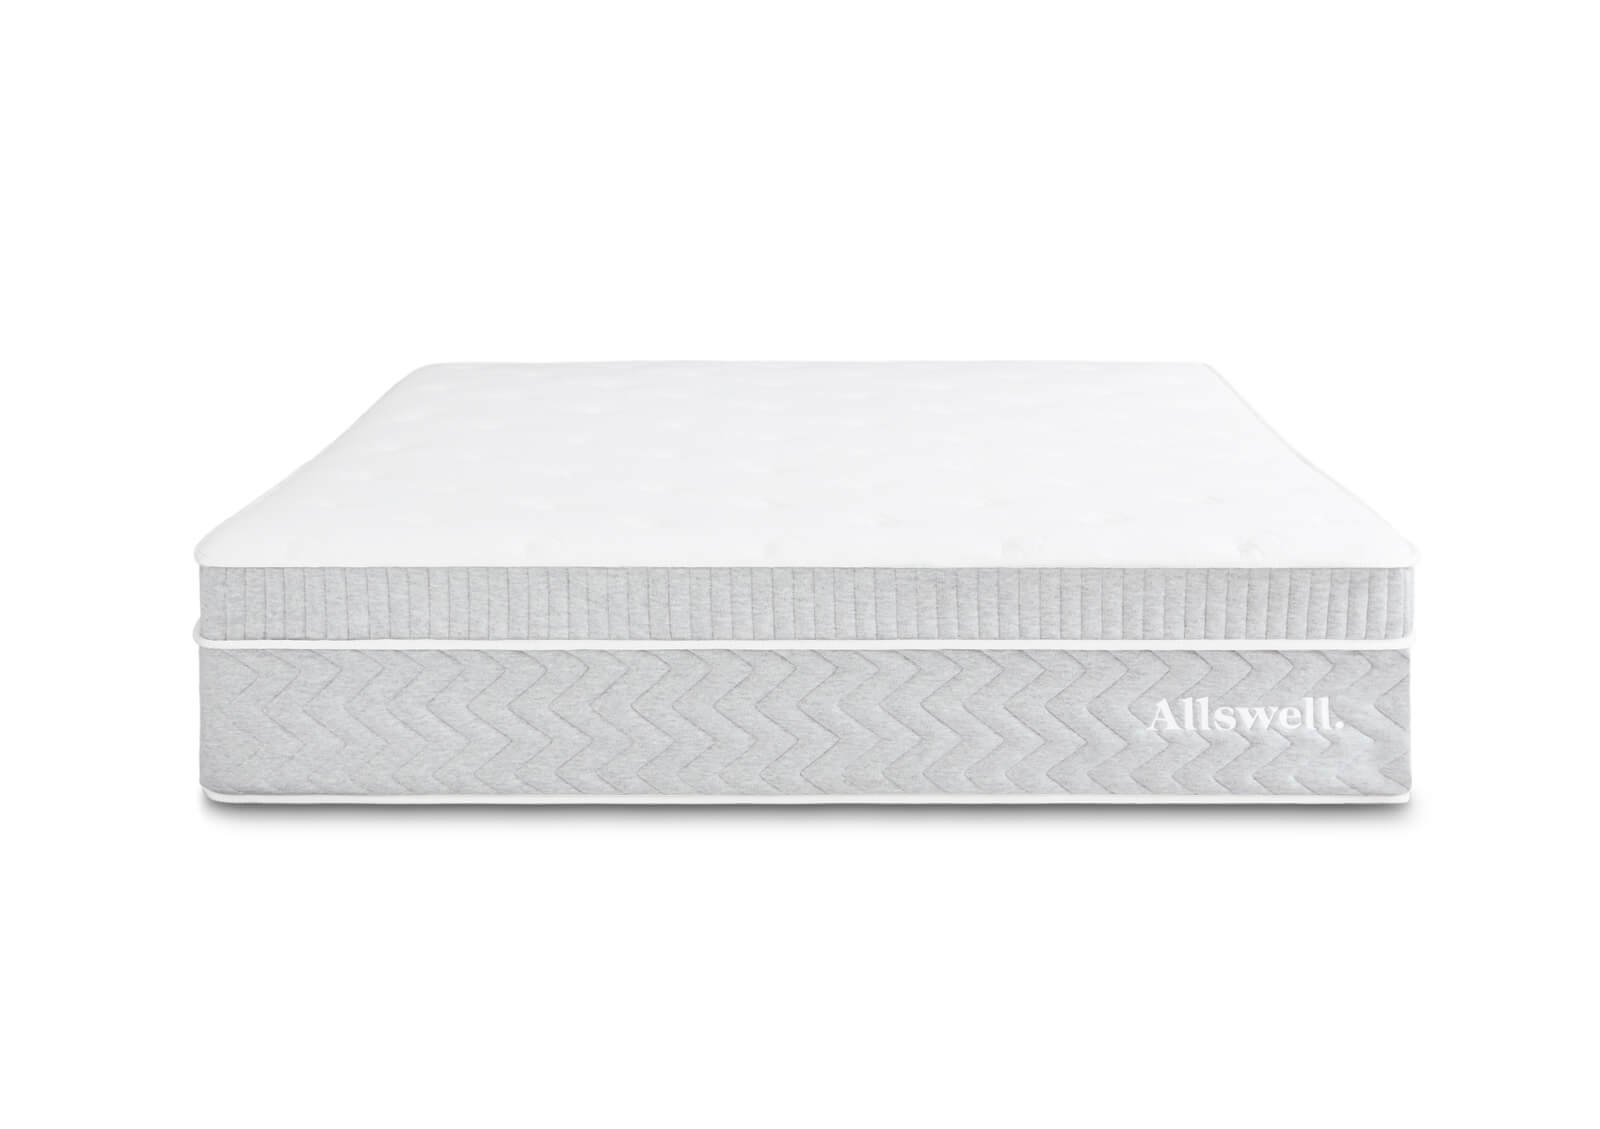 ALLSWELL | The Allswell Supreme - I own the King Supreme Mattress